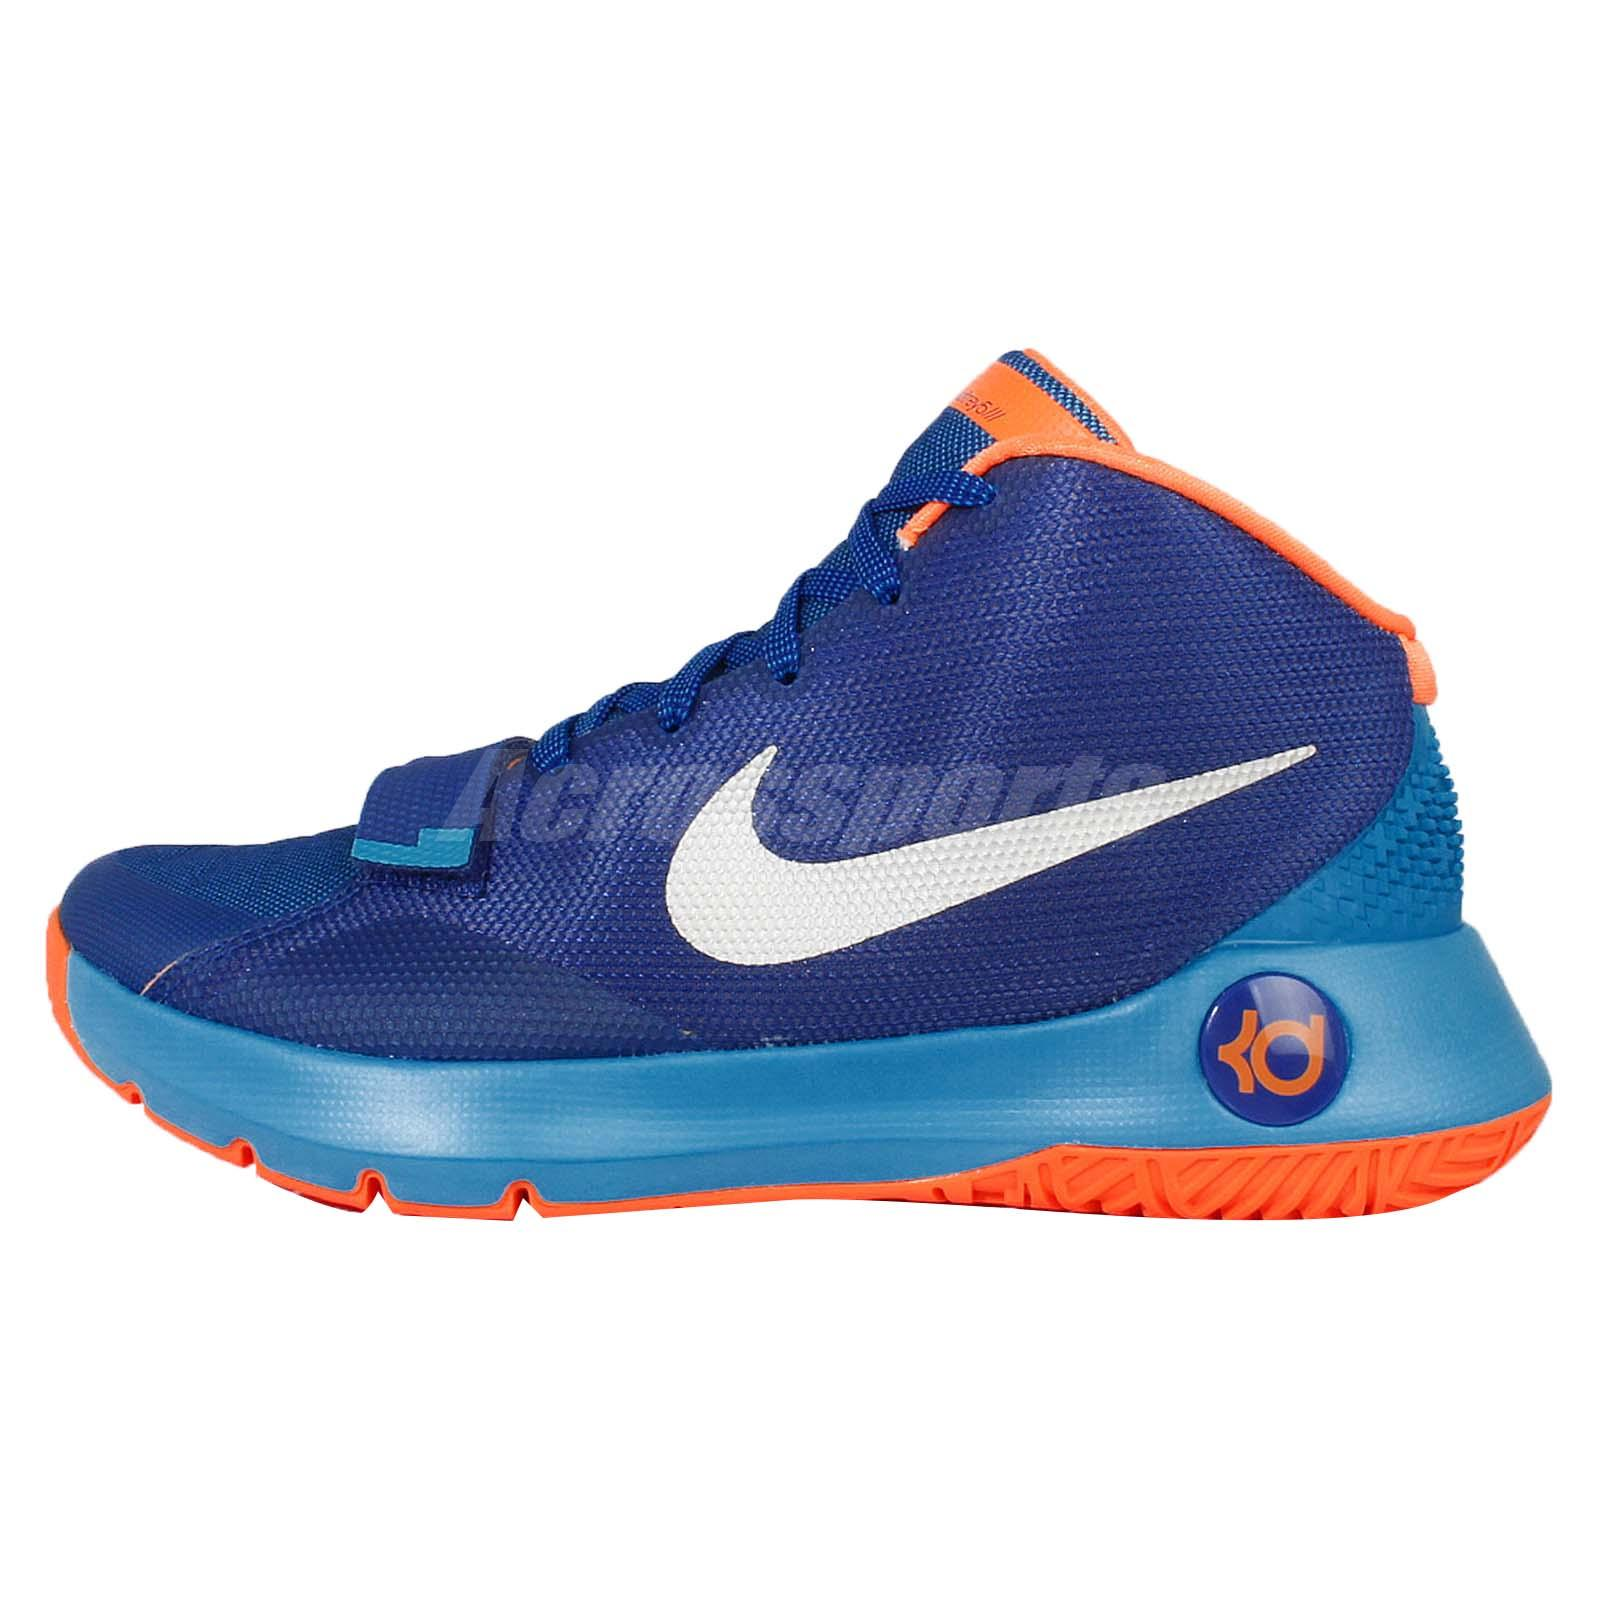 Mens Kd Shoes Ebay